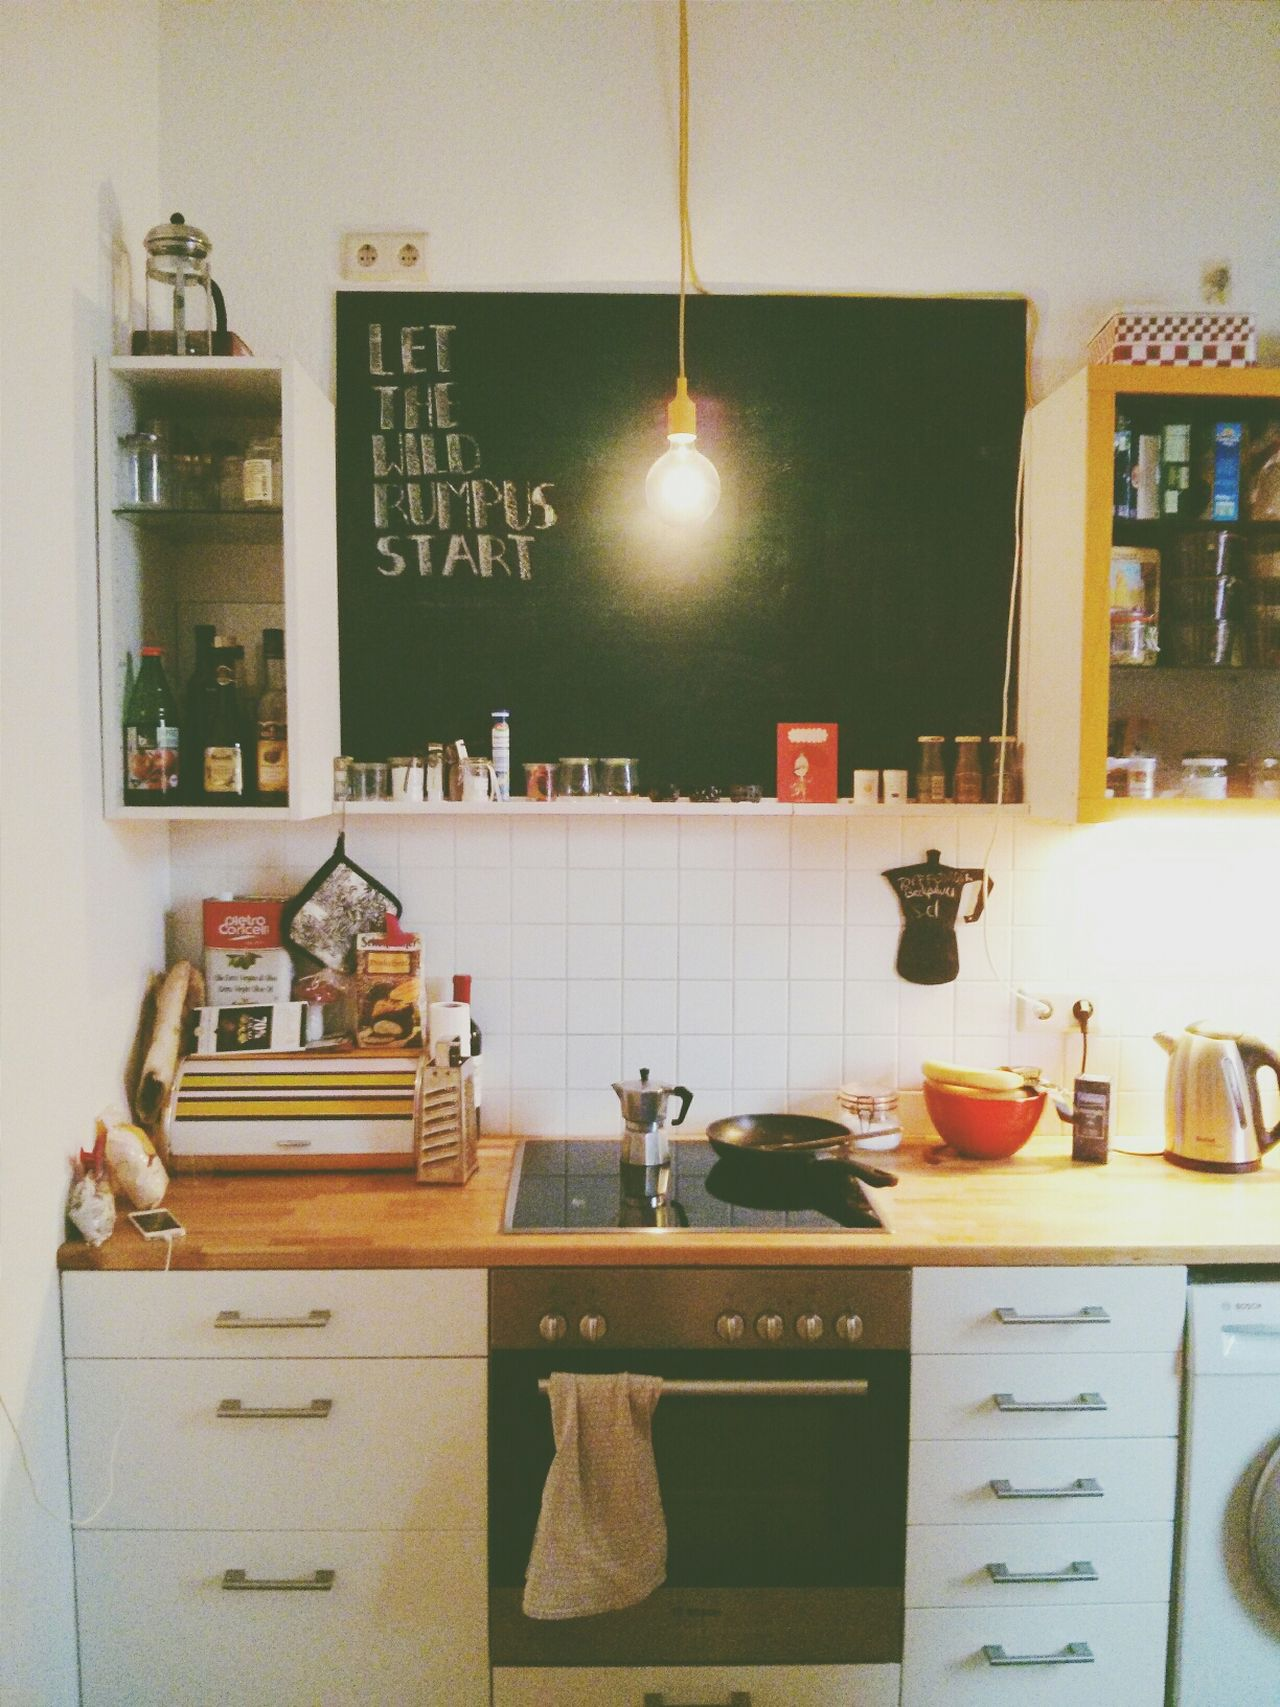 Let the wild rumpus start. At My Friends House Kitchen Vscocam